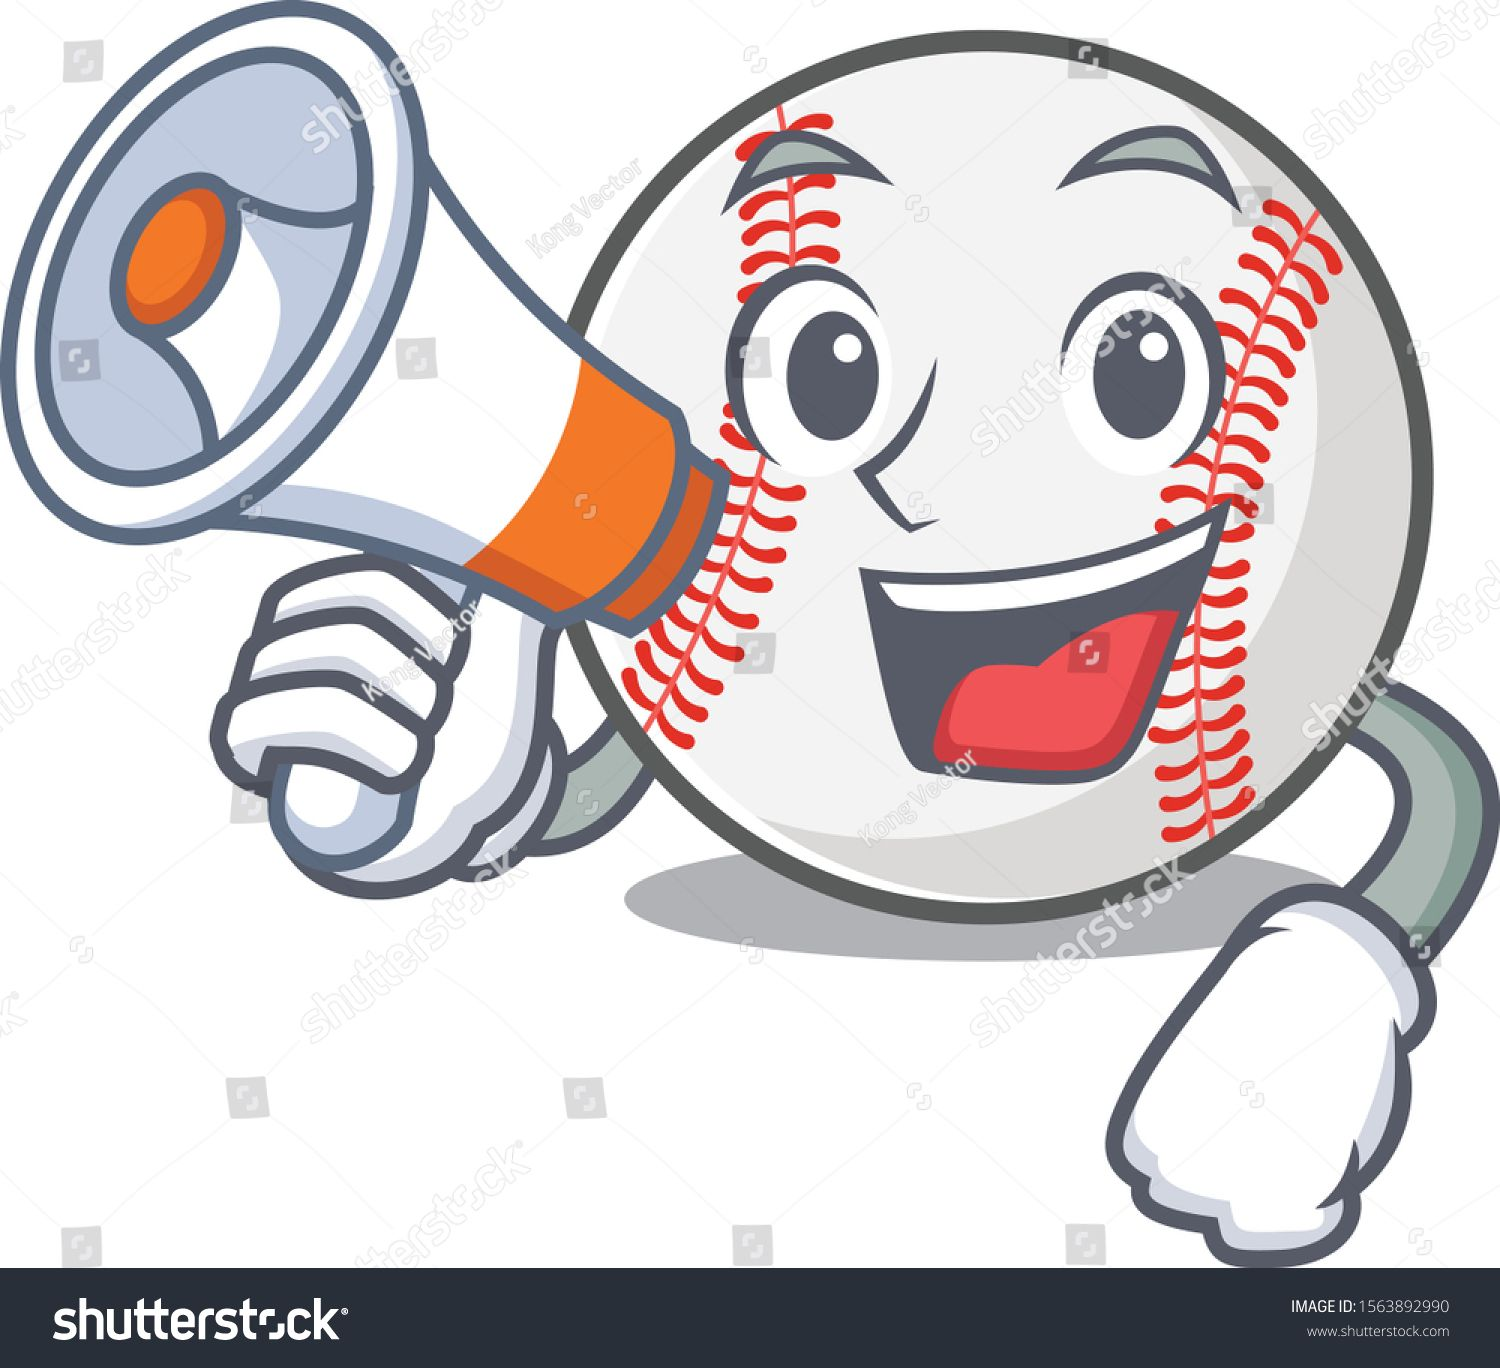 Cartoon Baseball With In A Character With Holding Megaphone Ad Sponsored Baseball Cartoon Character Megaphone Cartoon Character Cartoon Characters